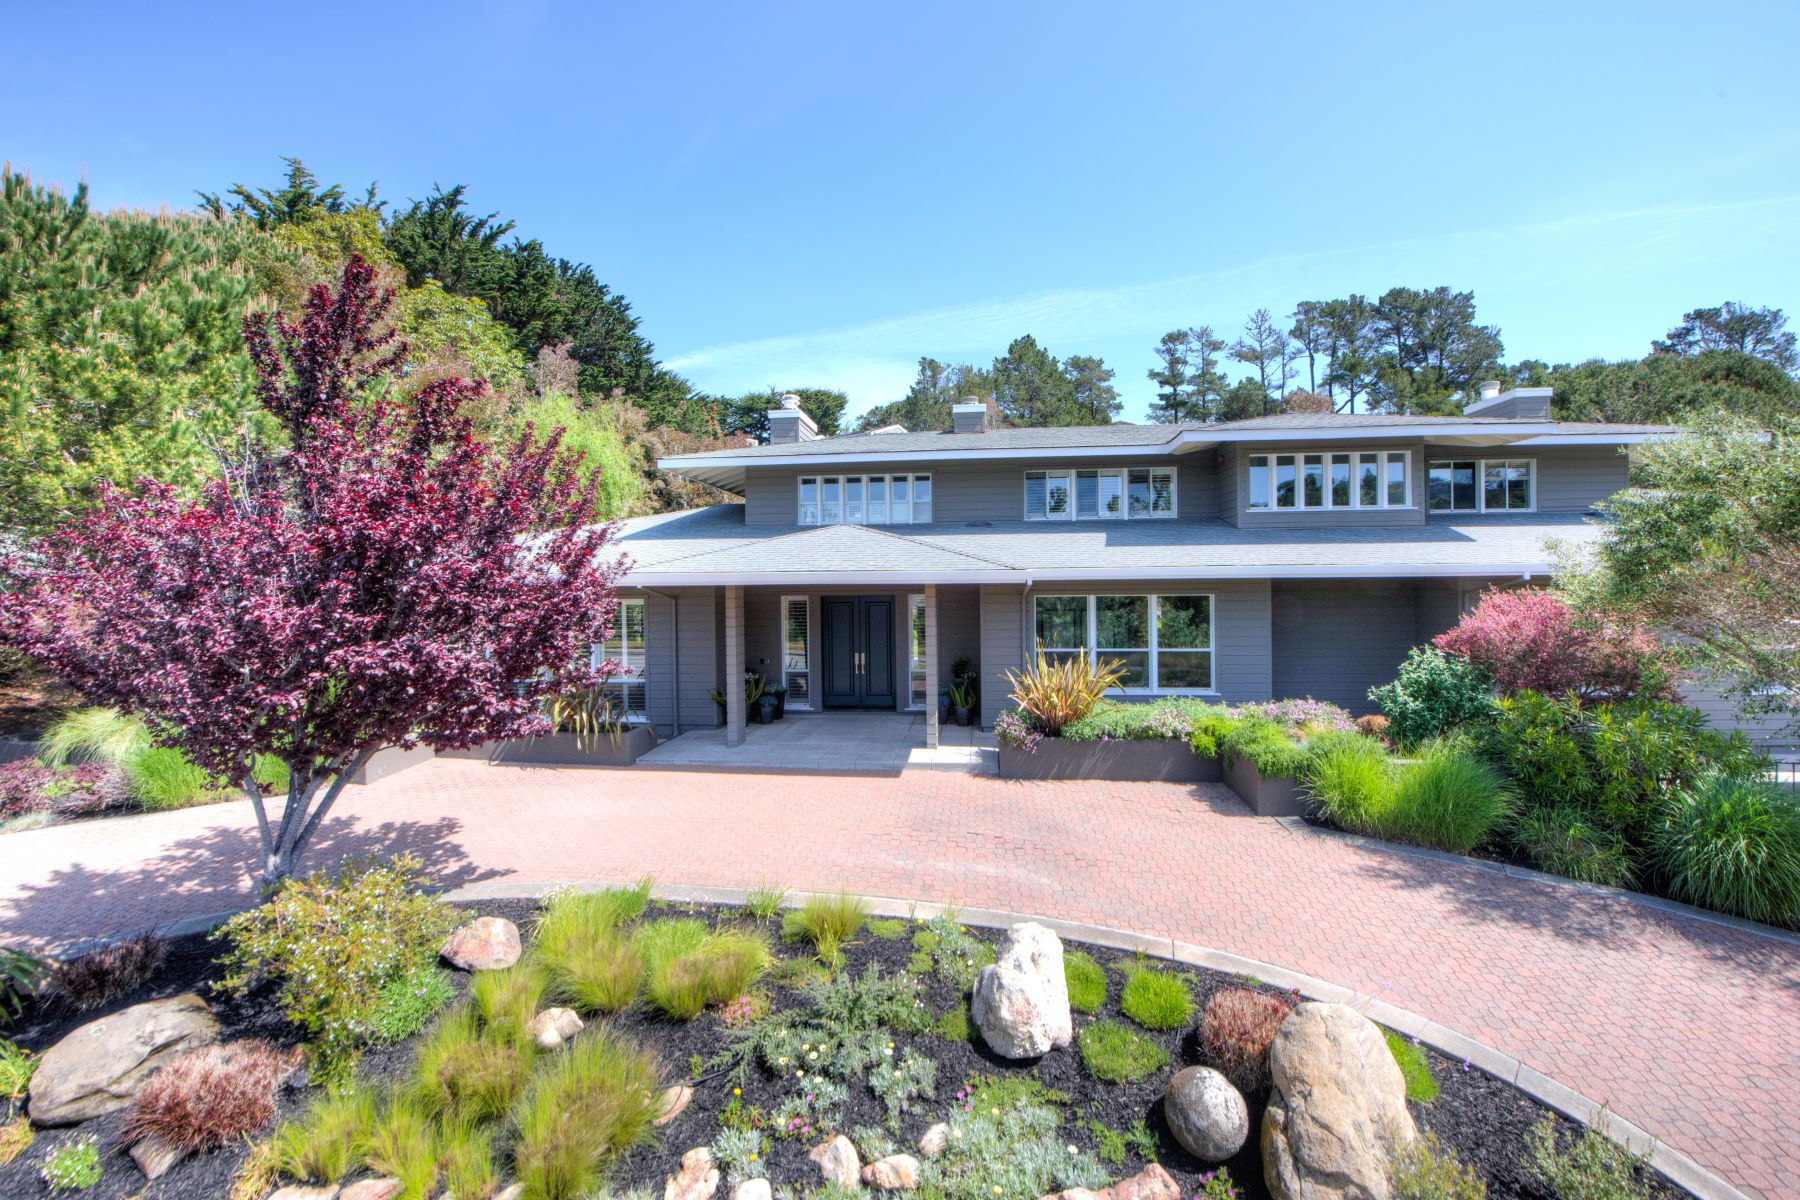 Single Family Home for Sale at Gorgeous Family Compound on Nearly 1 Acre! 4 Turtle Rock Ct Tiburon, California 94920 United States